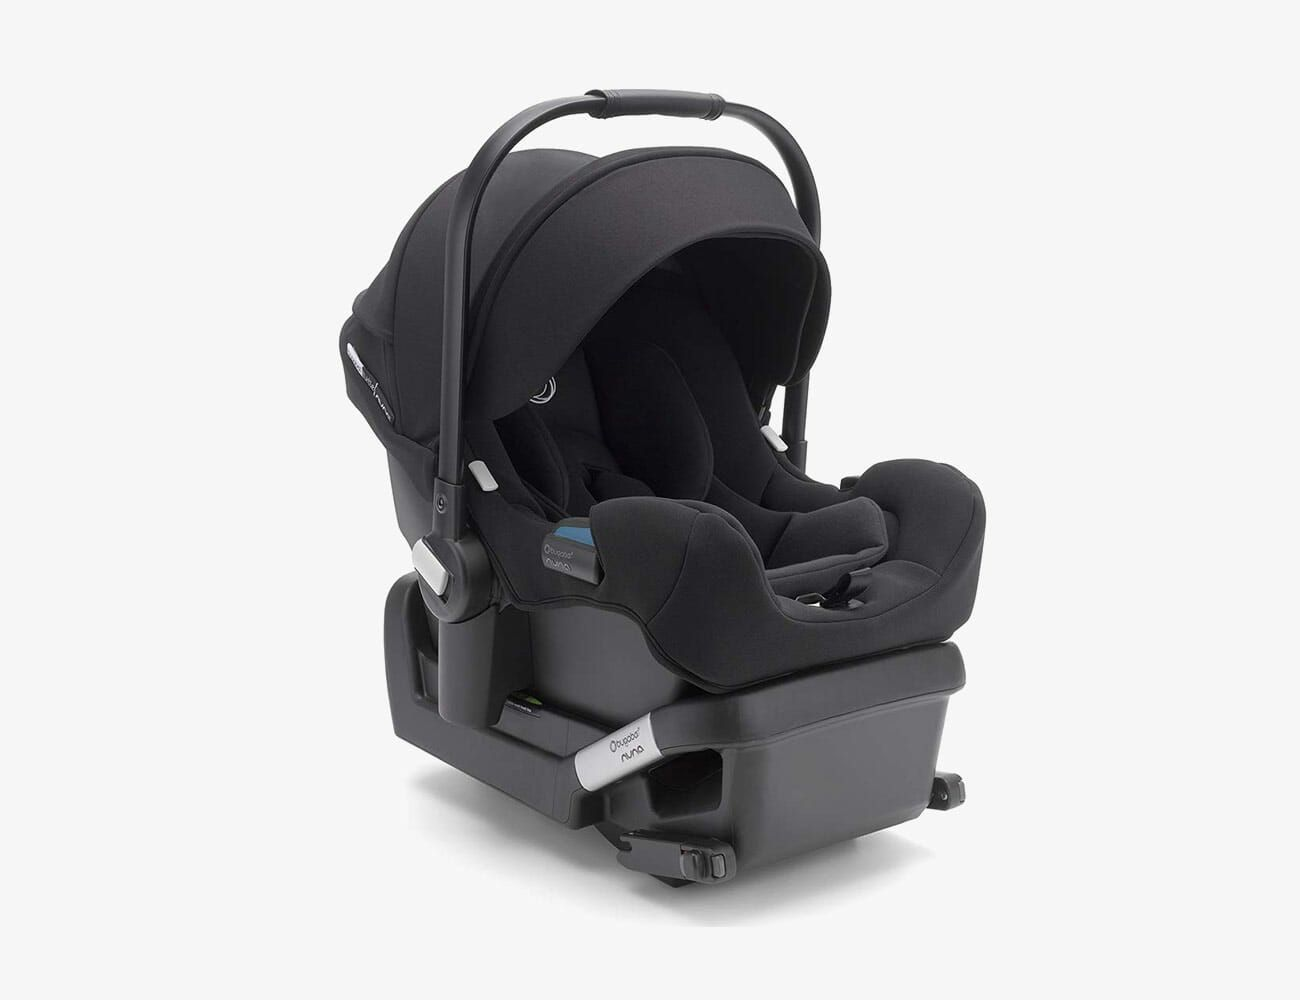 Stroller Travel System Ebay The Quick And Easy Guide To Choosing A Children S Car Seat